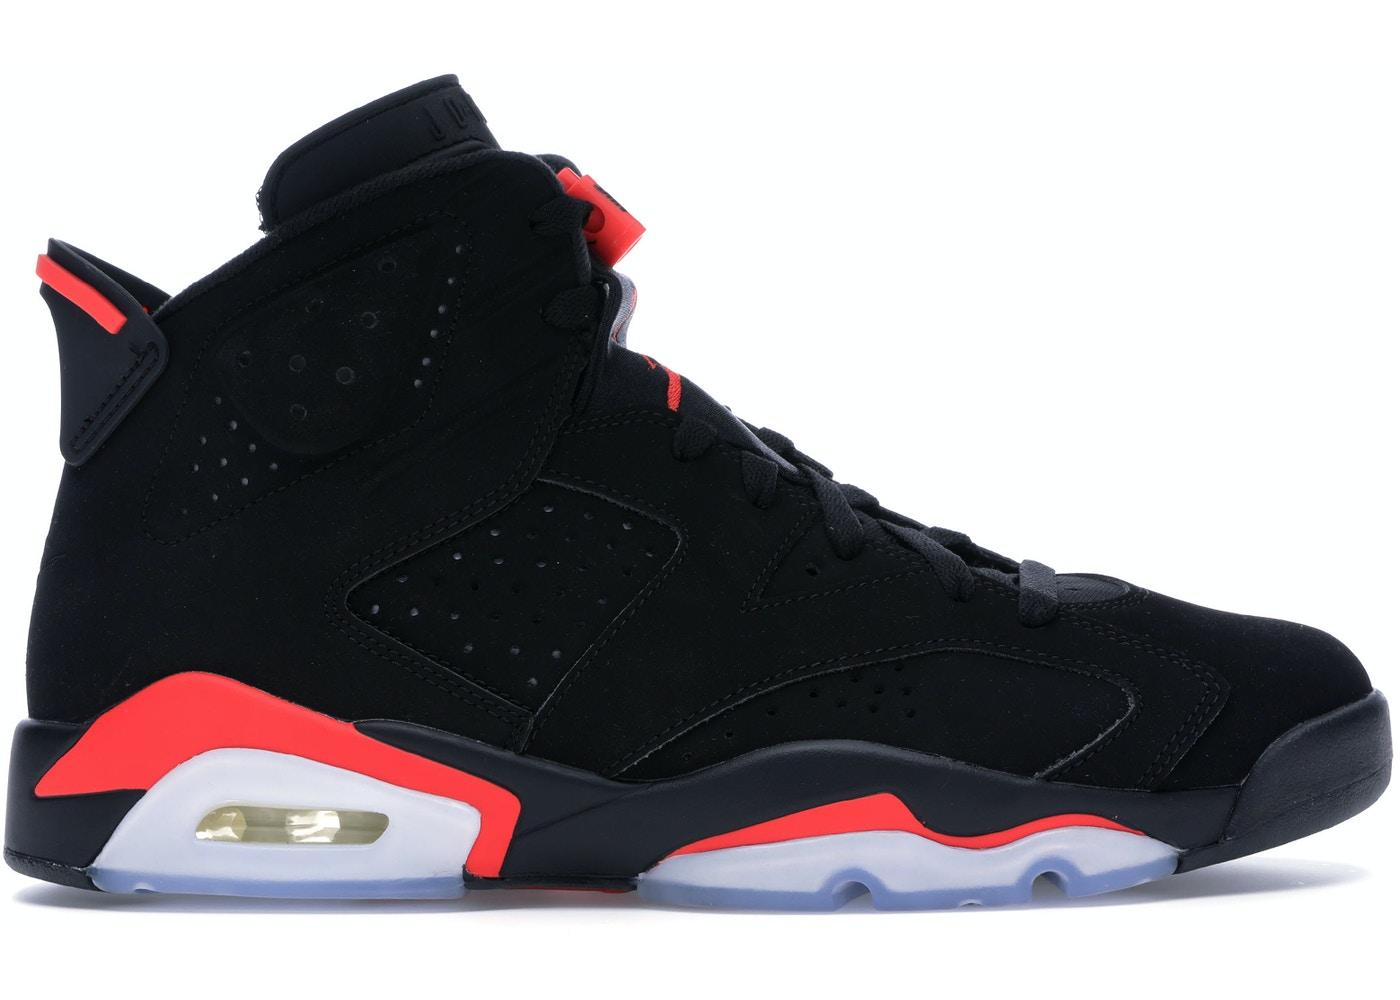 best sneakers 132f3 f09f5 Jordan 6 Retro Black Infrared (2019)